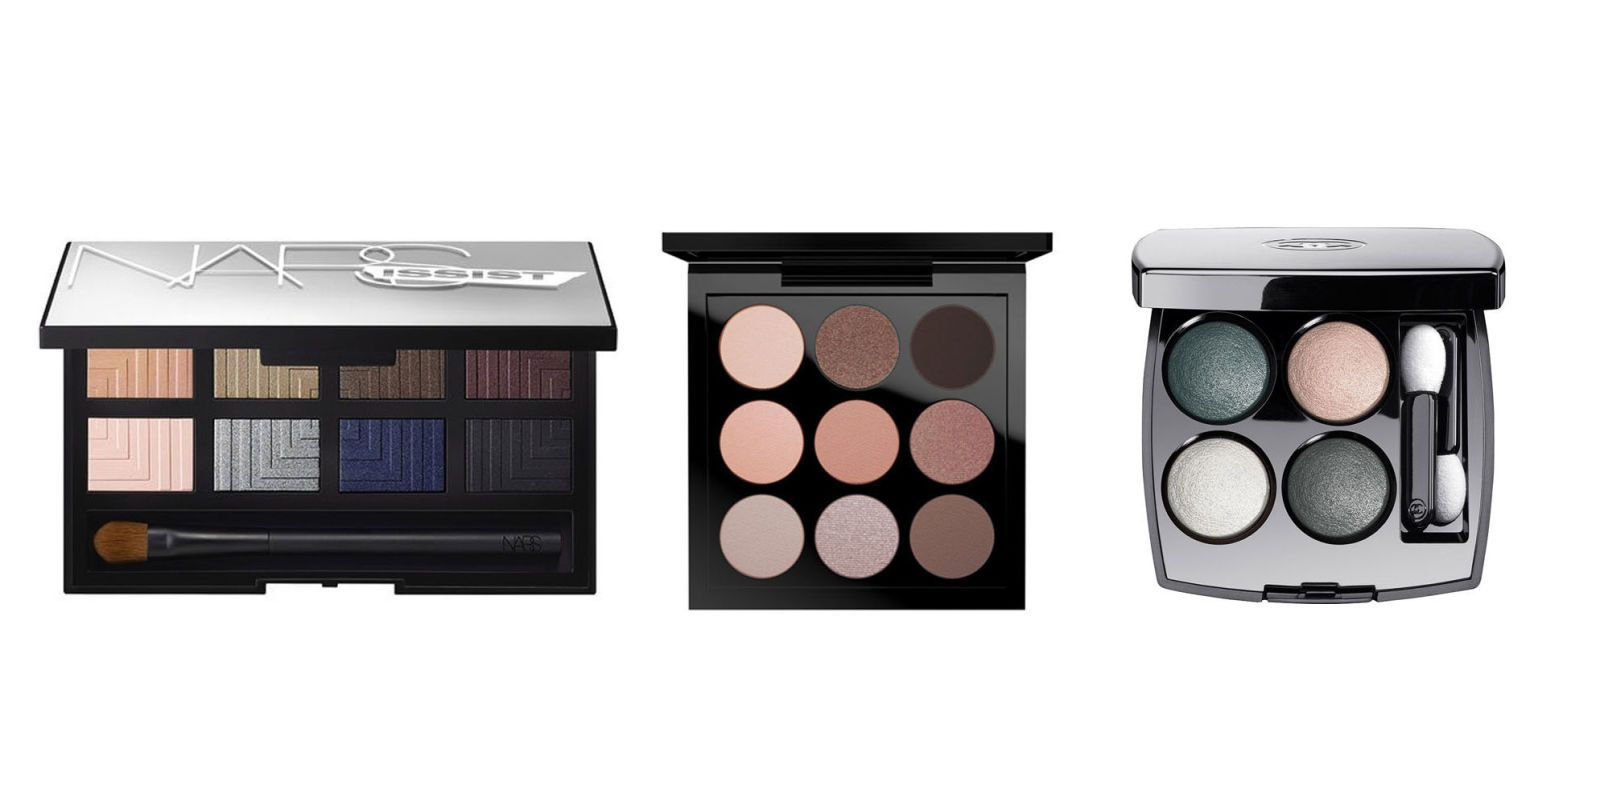 Give your beauty routine a revamp with any of these autumn-inspired eyeshadow palettes.